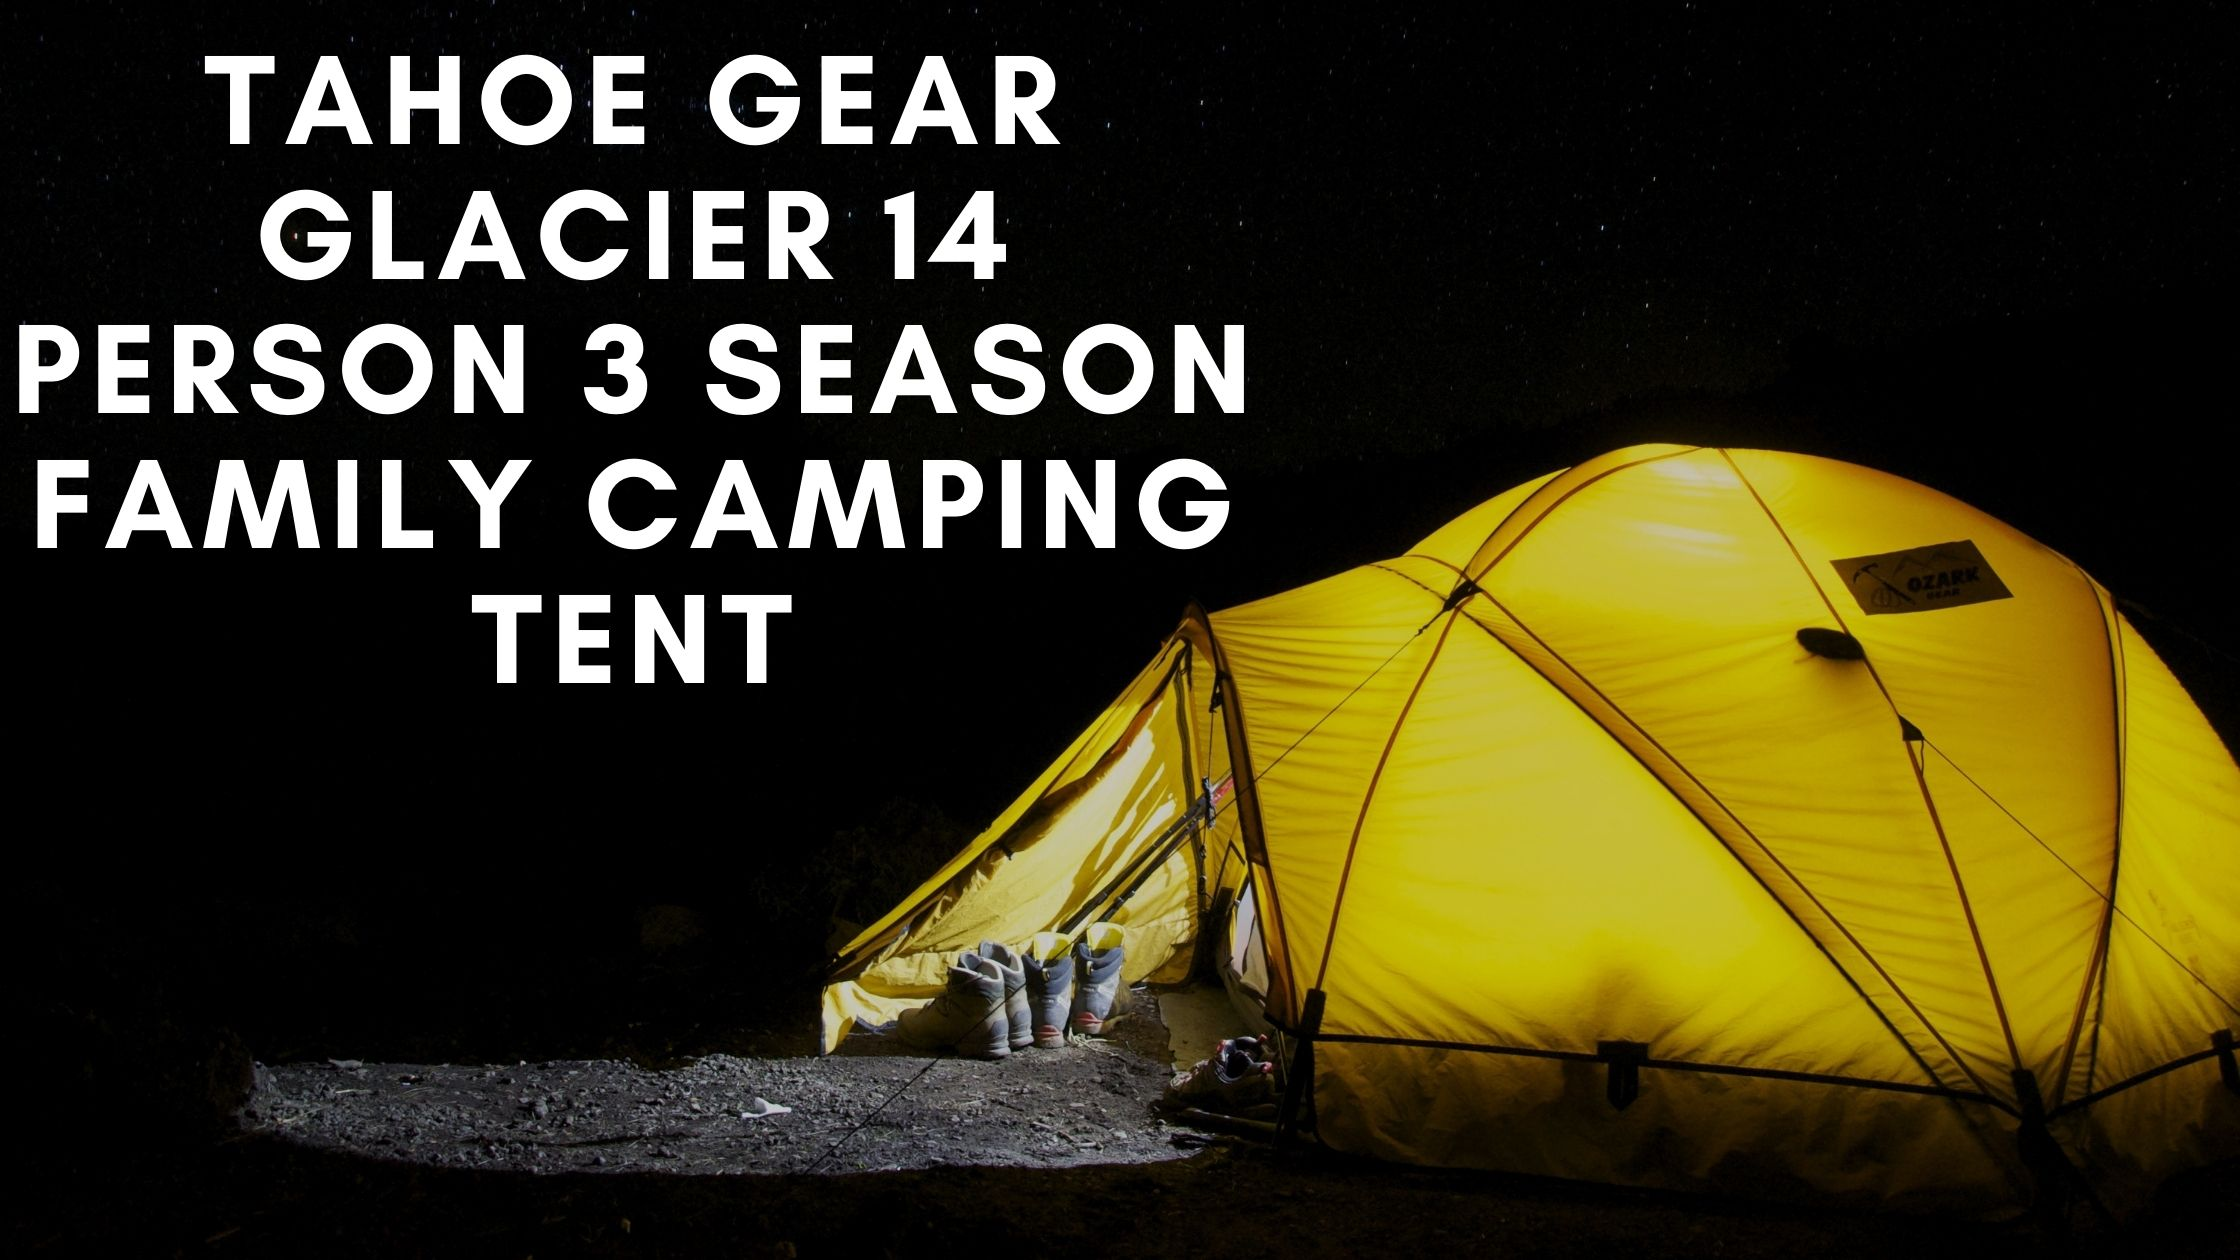 Tahoe Gear Glacier 14 Person 3-Season Family Camping Tent Review